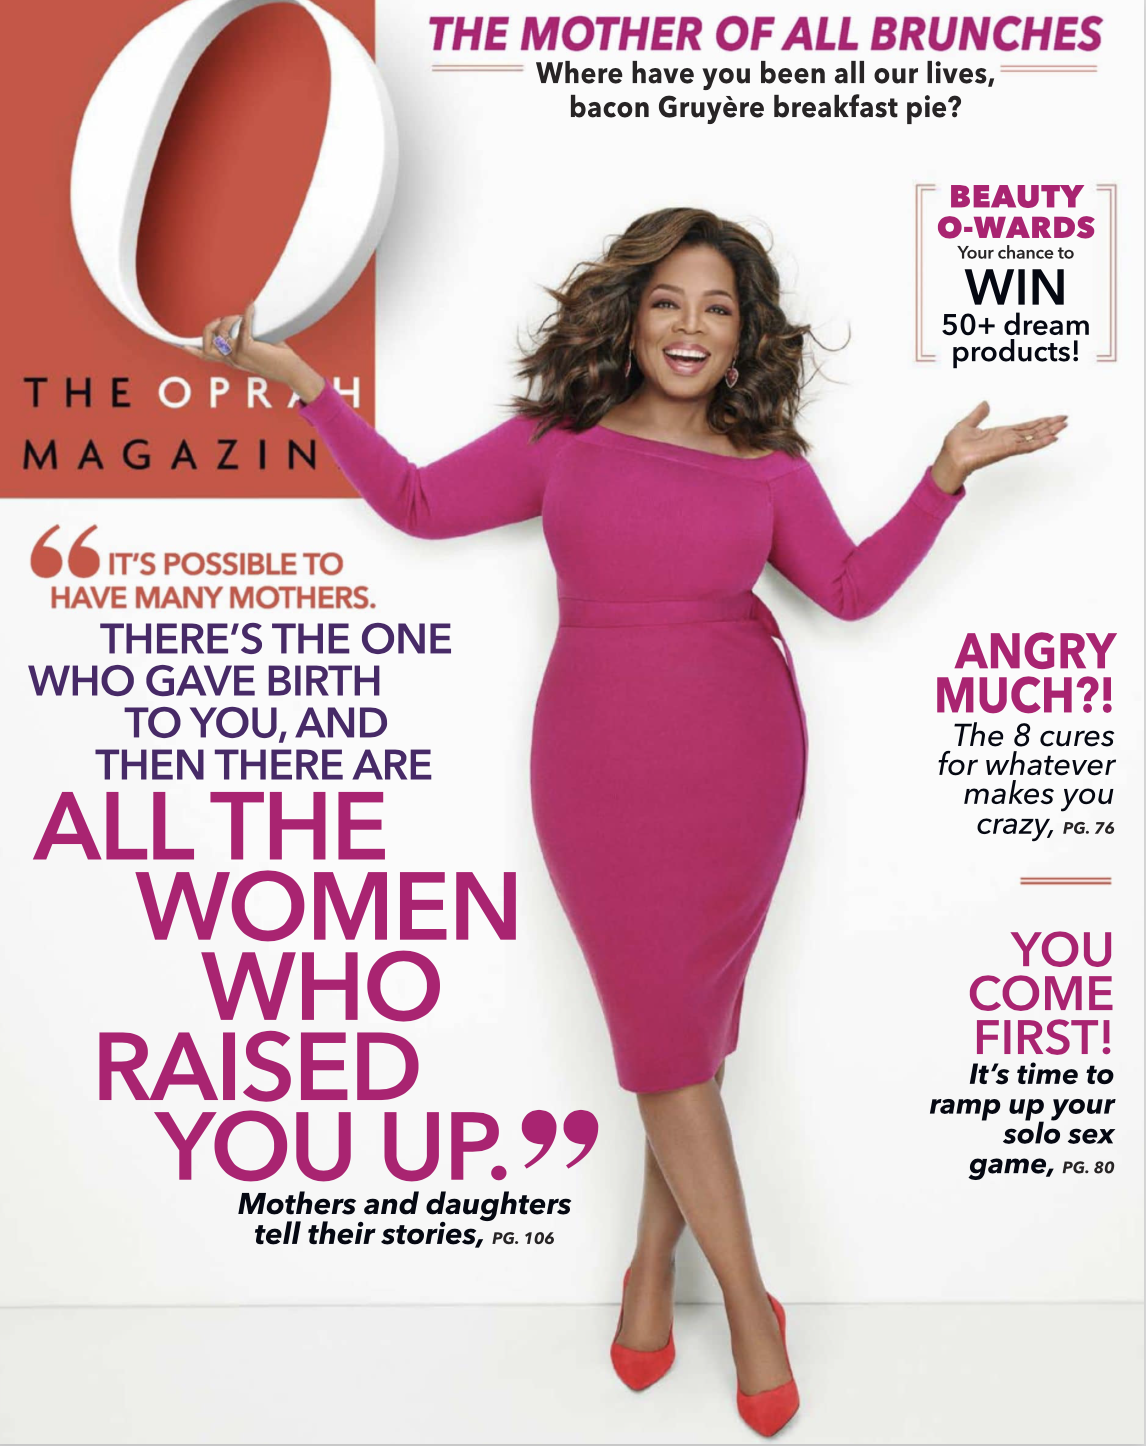 MAY 2019 OPRAH MAG ISSUE